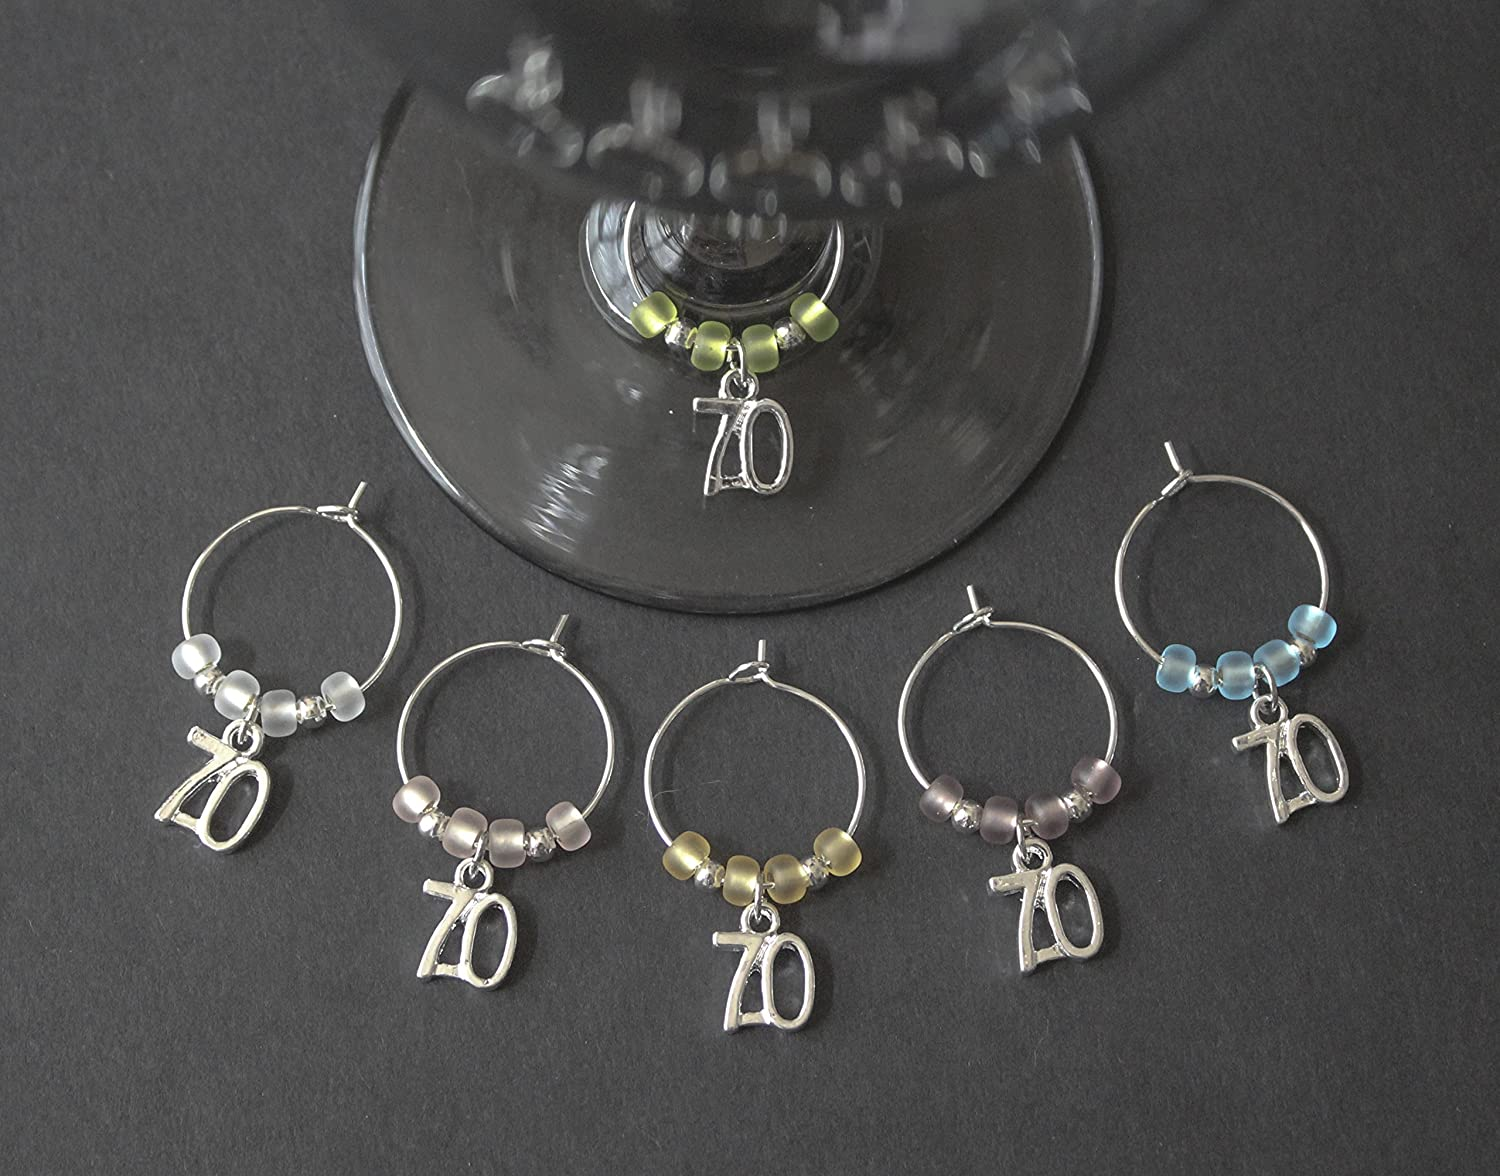 70th Birthday/Anniversary Wine Glass Charms-Set of 6-S70/001-6